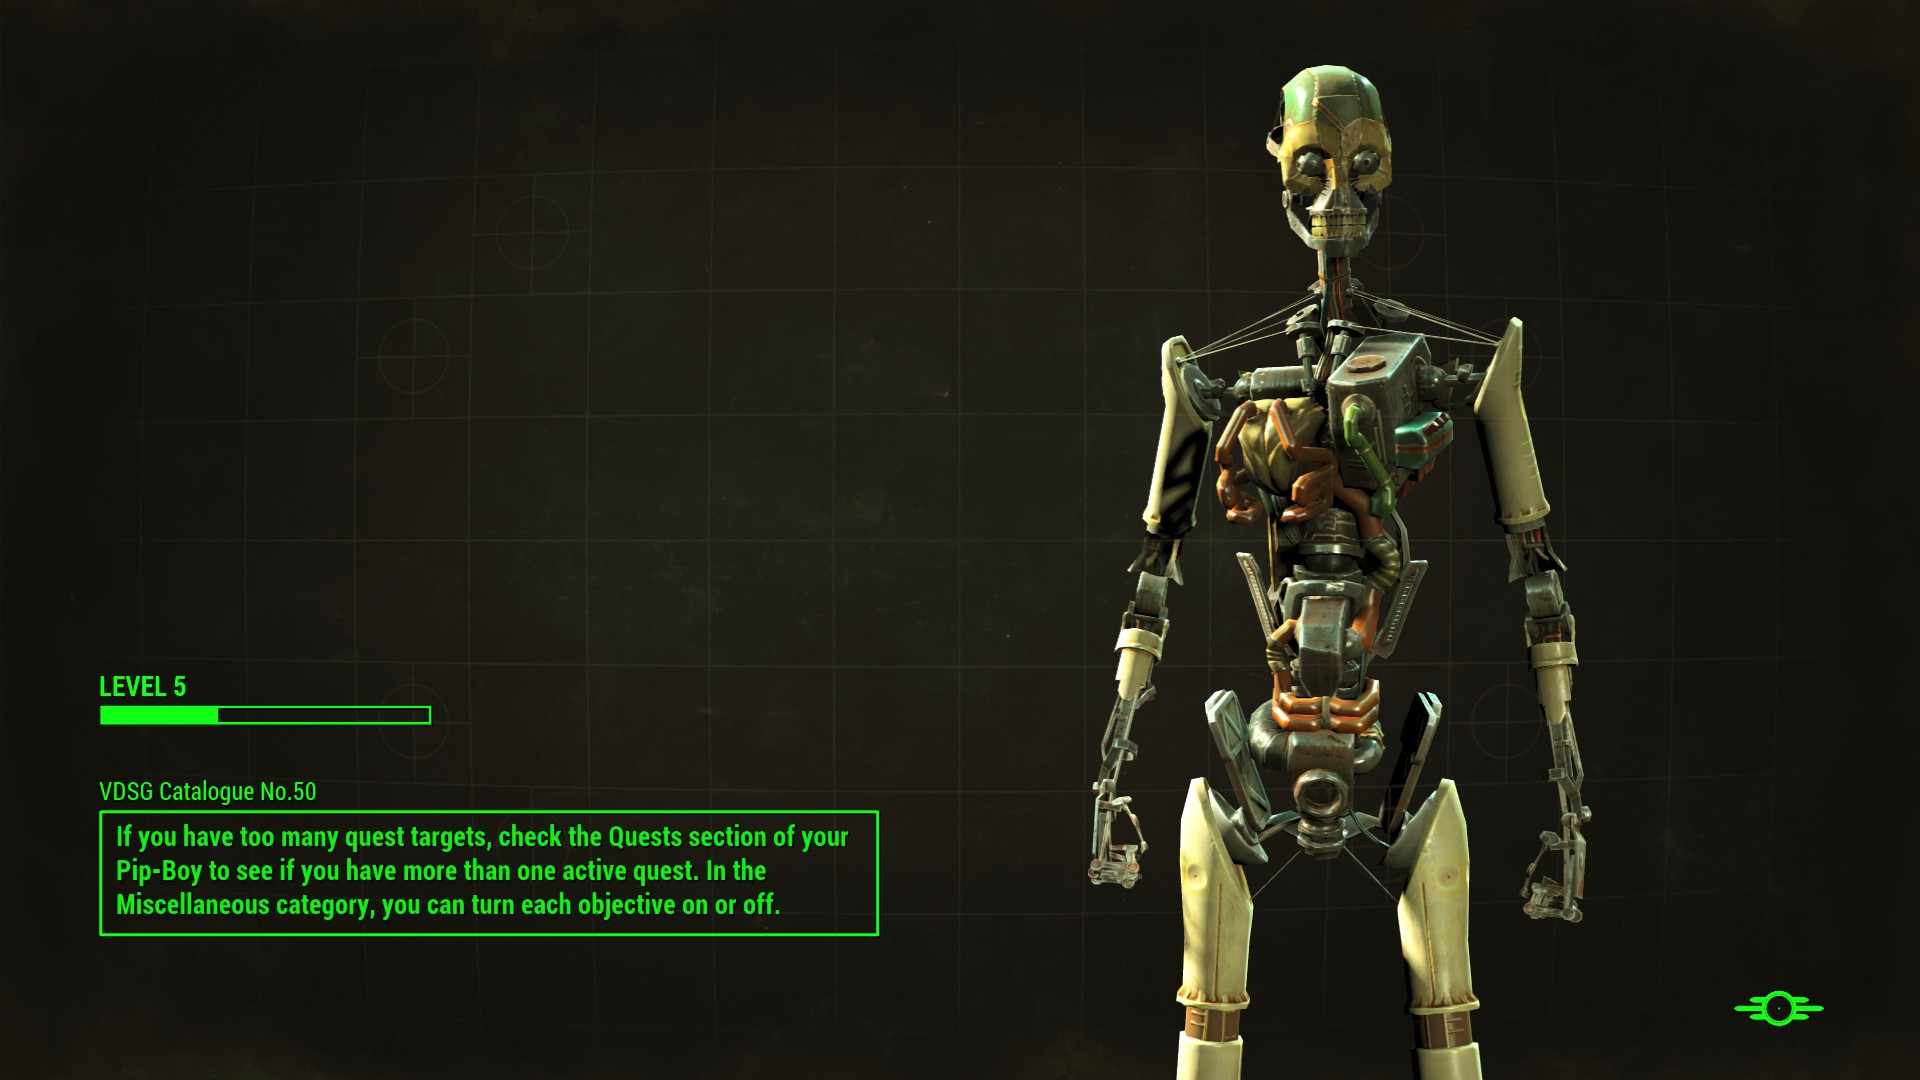 Free enslaved androids from Boston in Fallout 4? | Nerd Reactor